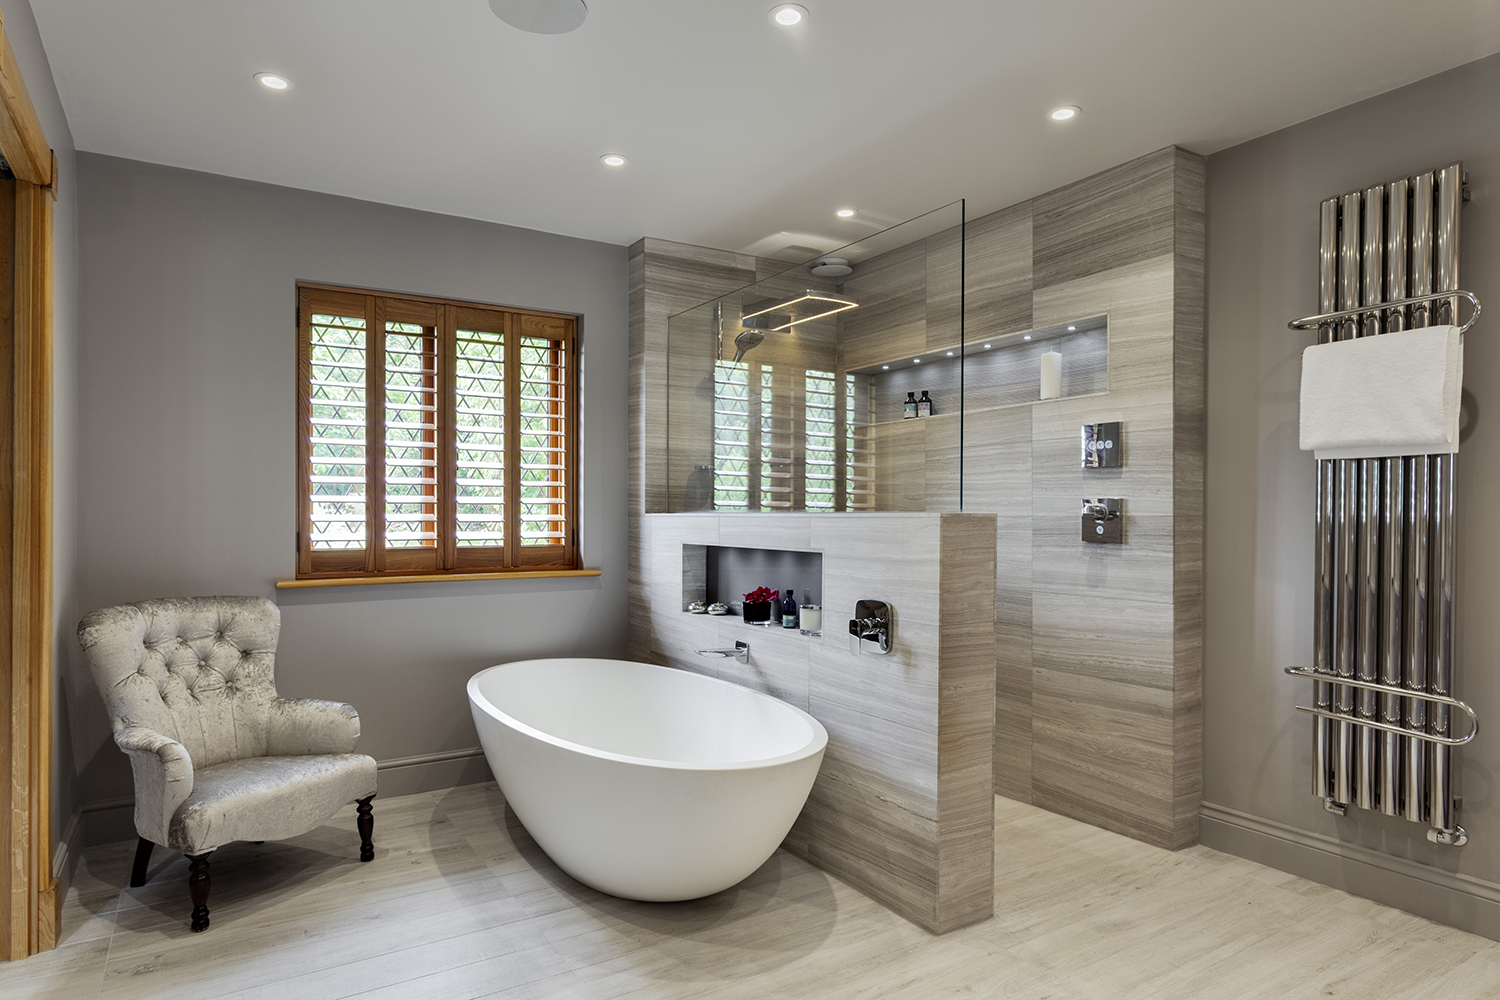 Bathroom Design With Dressing Room